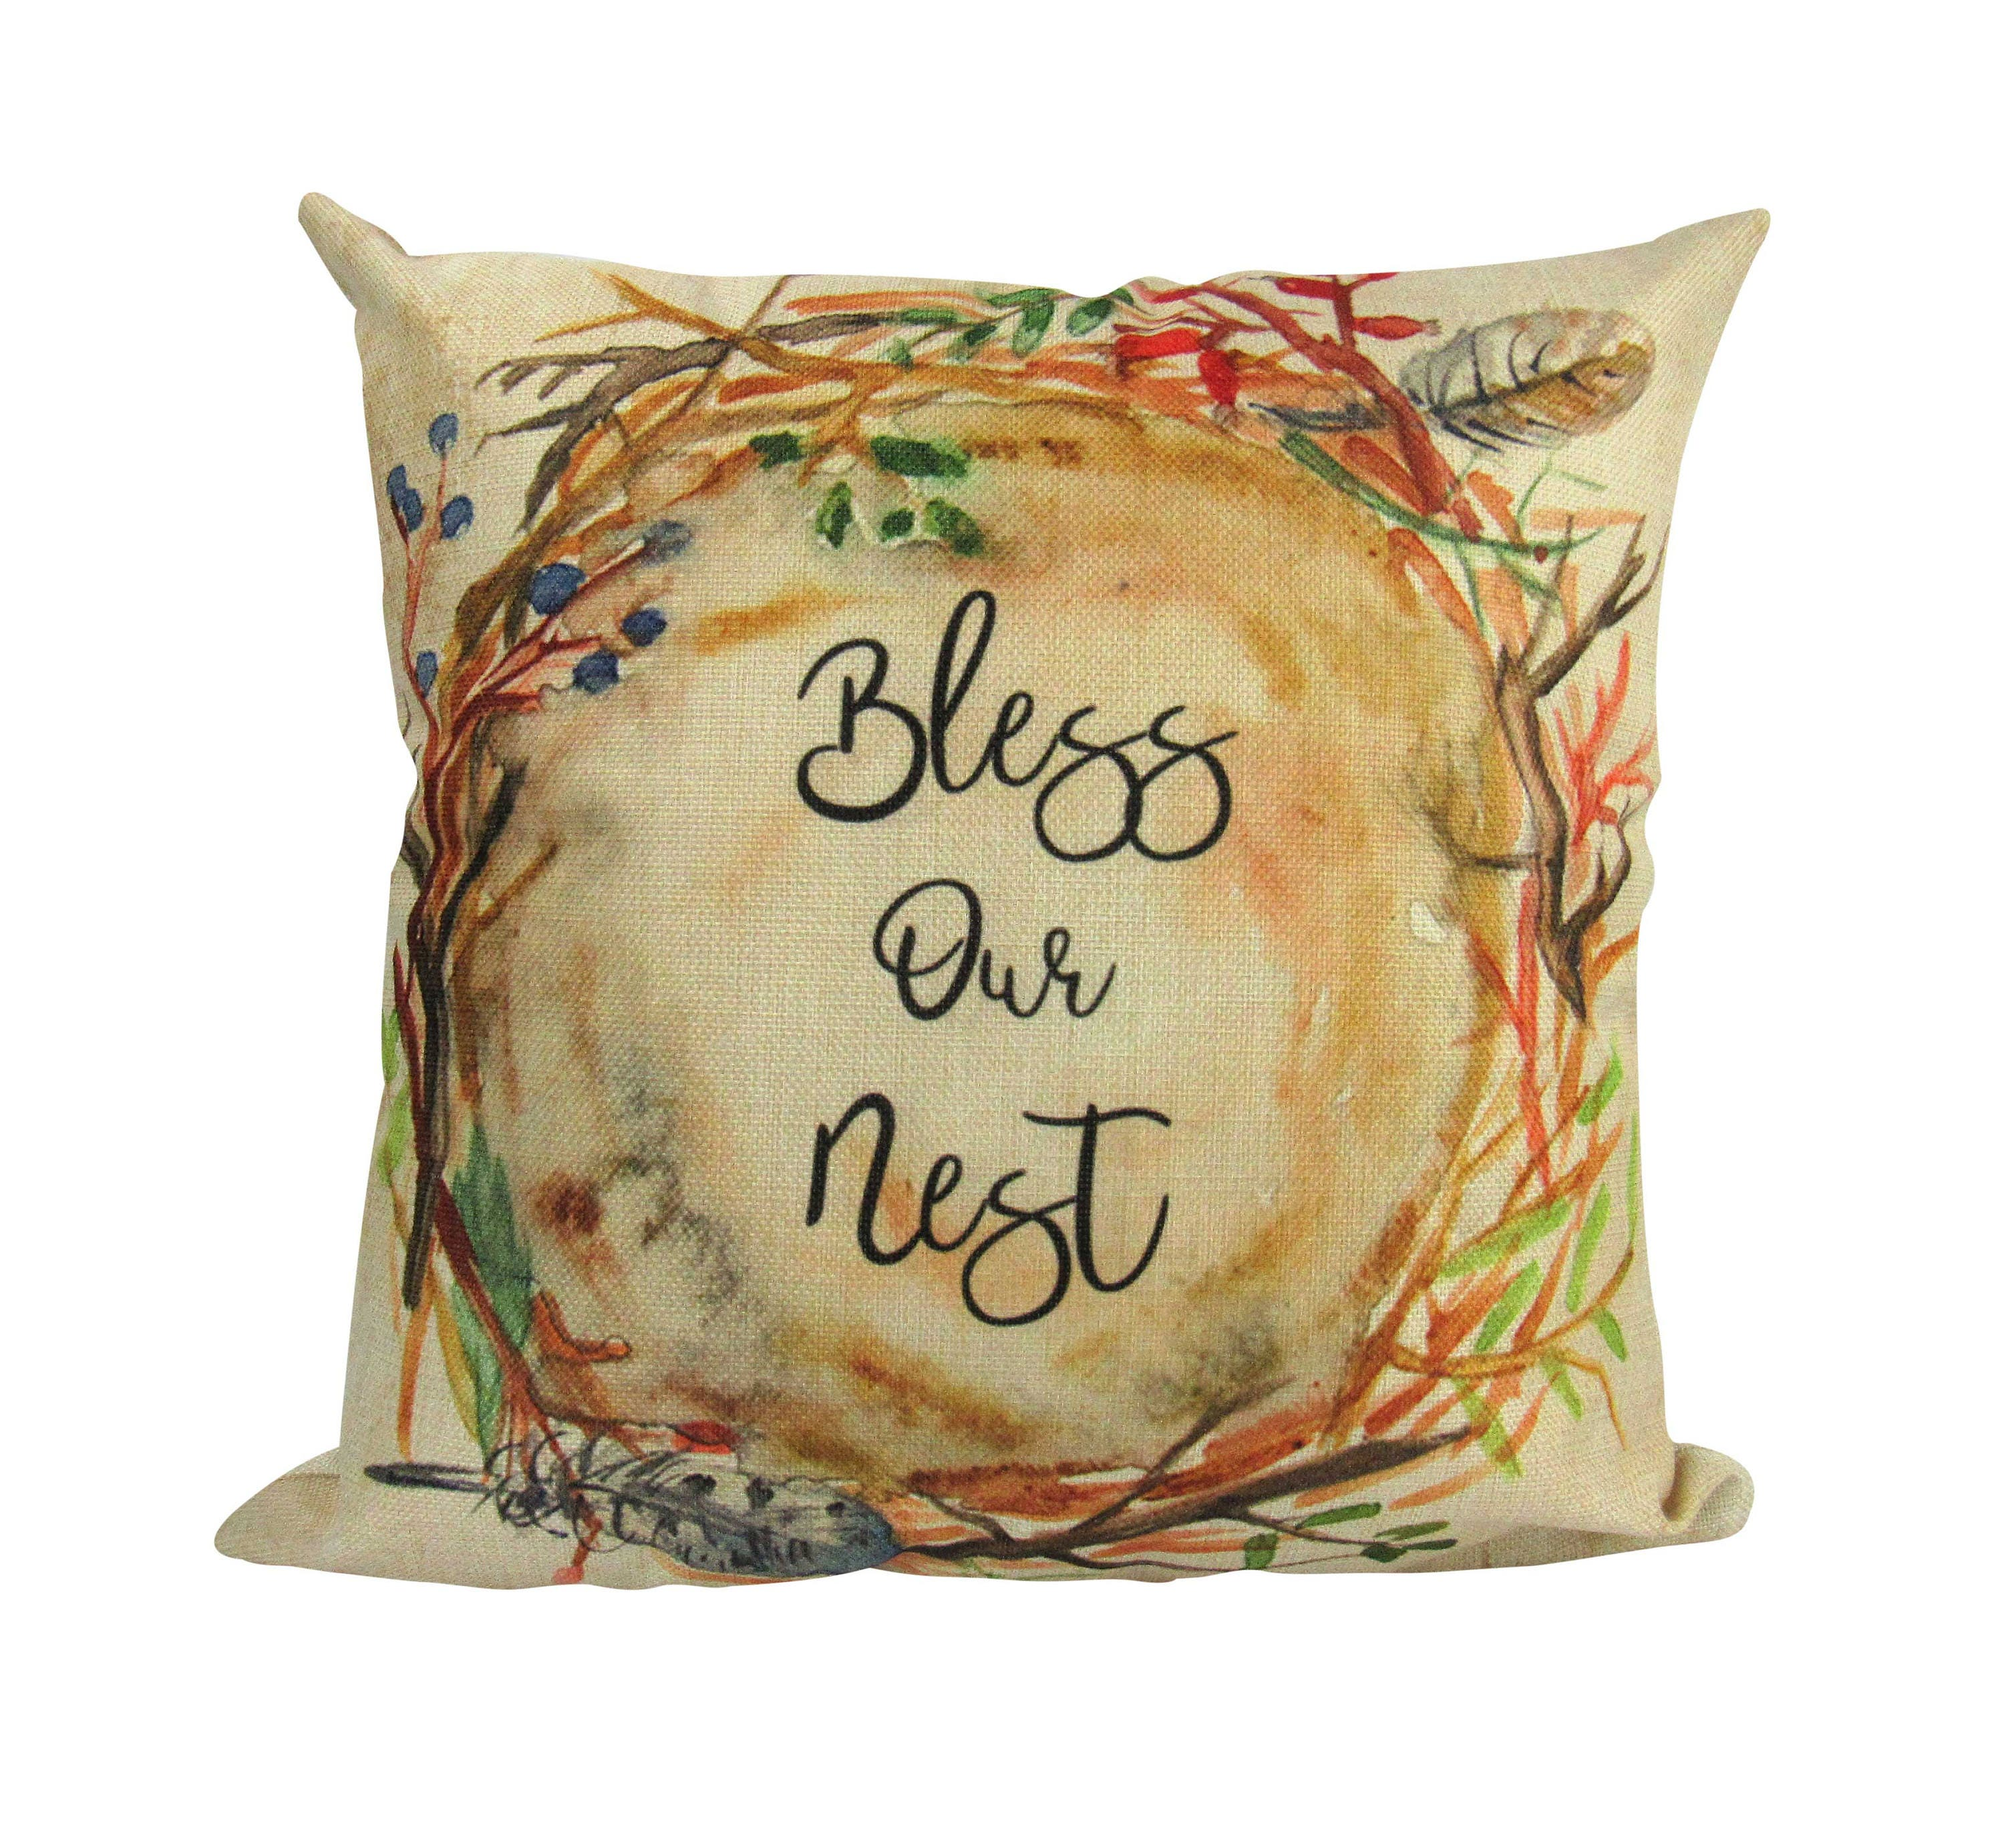 Bless This Nest Pillow Cover Our Nest Our Nest Pillow